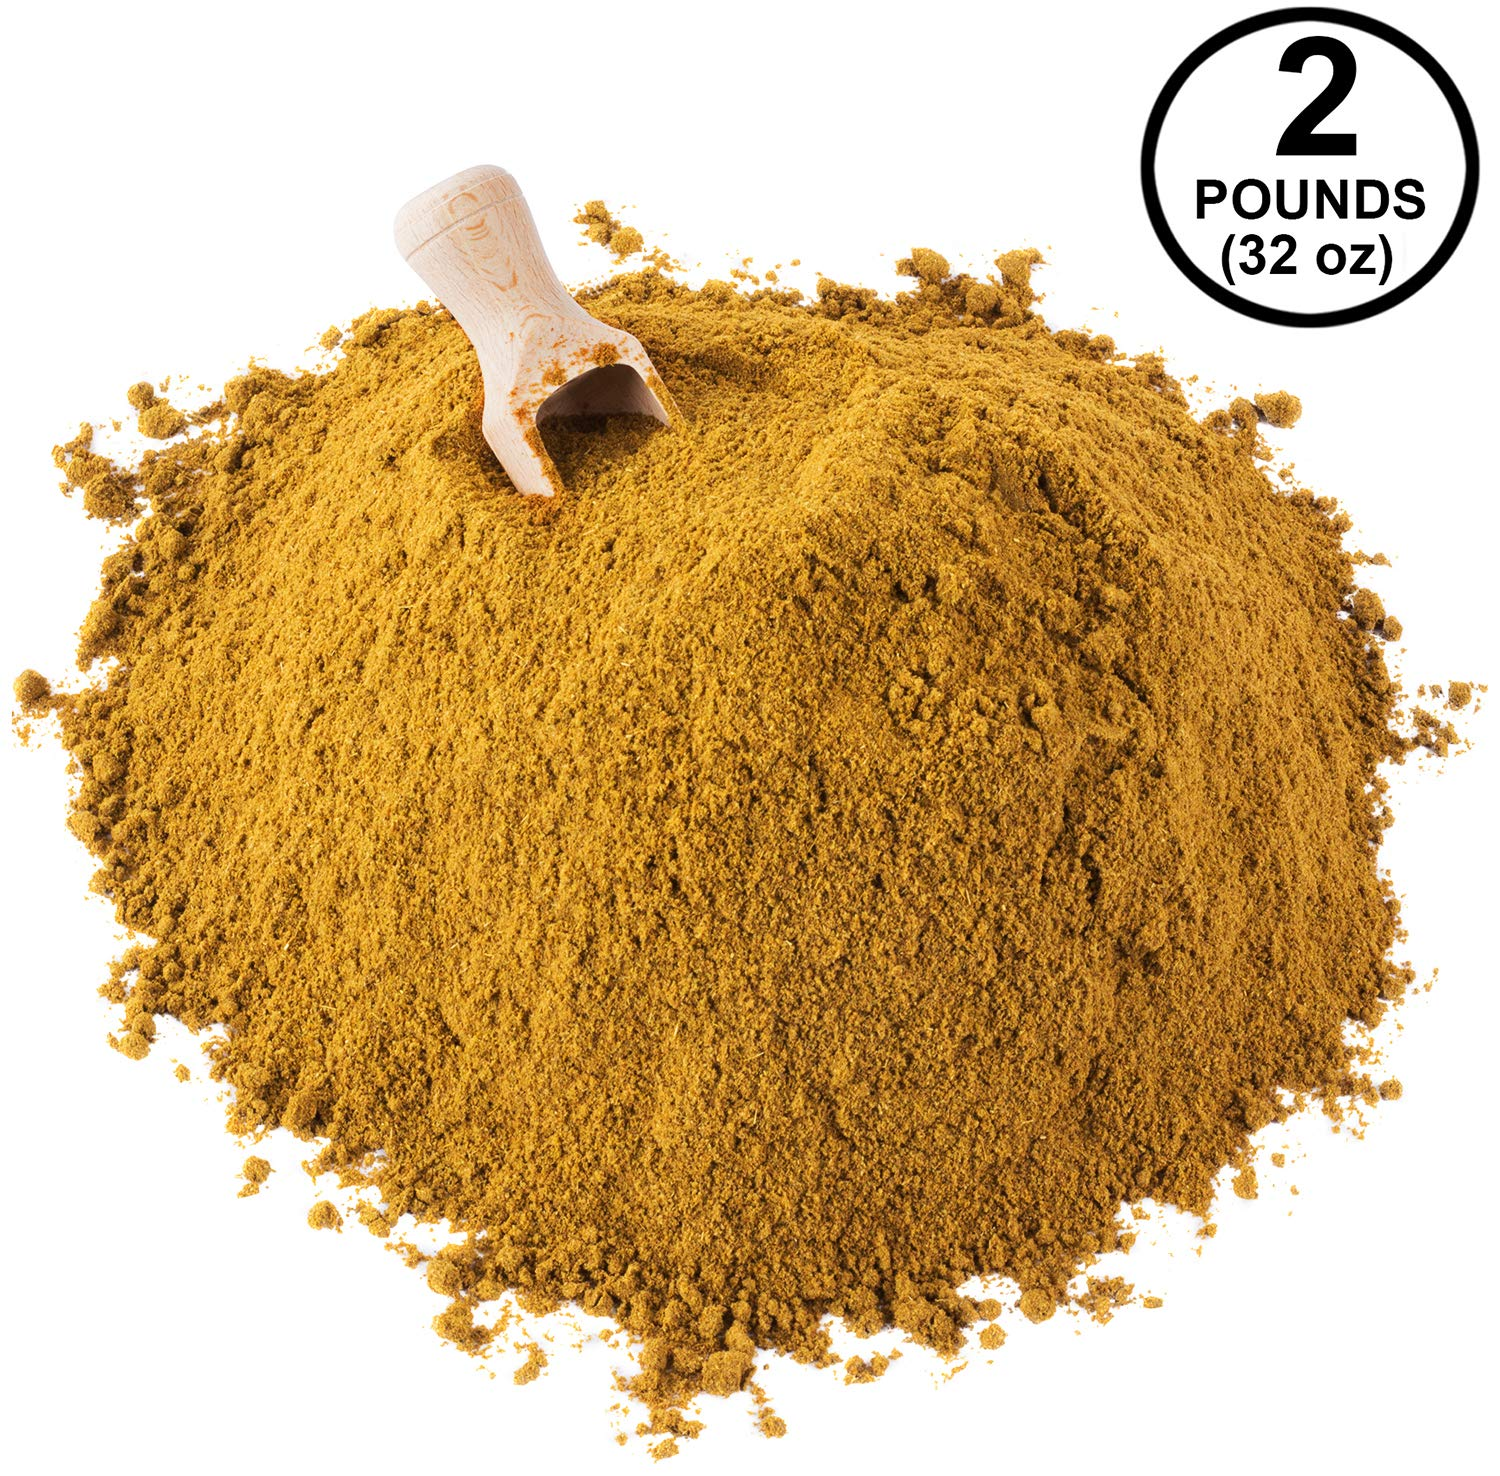 Cumin Powder - Ground Cumin Bulk - Cumin Spice - Bulk Cumin - Bulk Spices - 32oz, Mega Bag